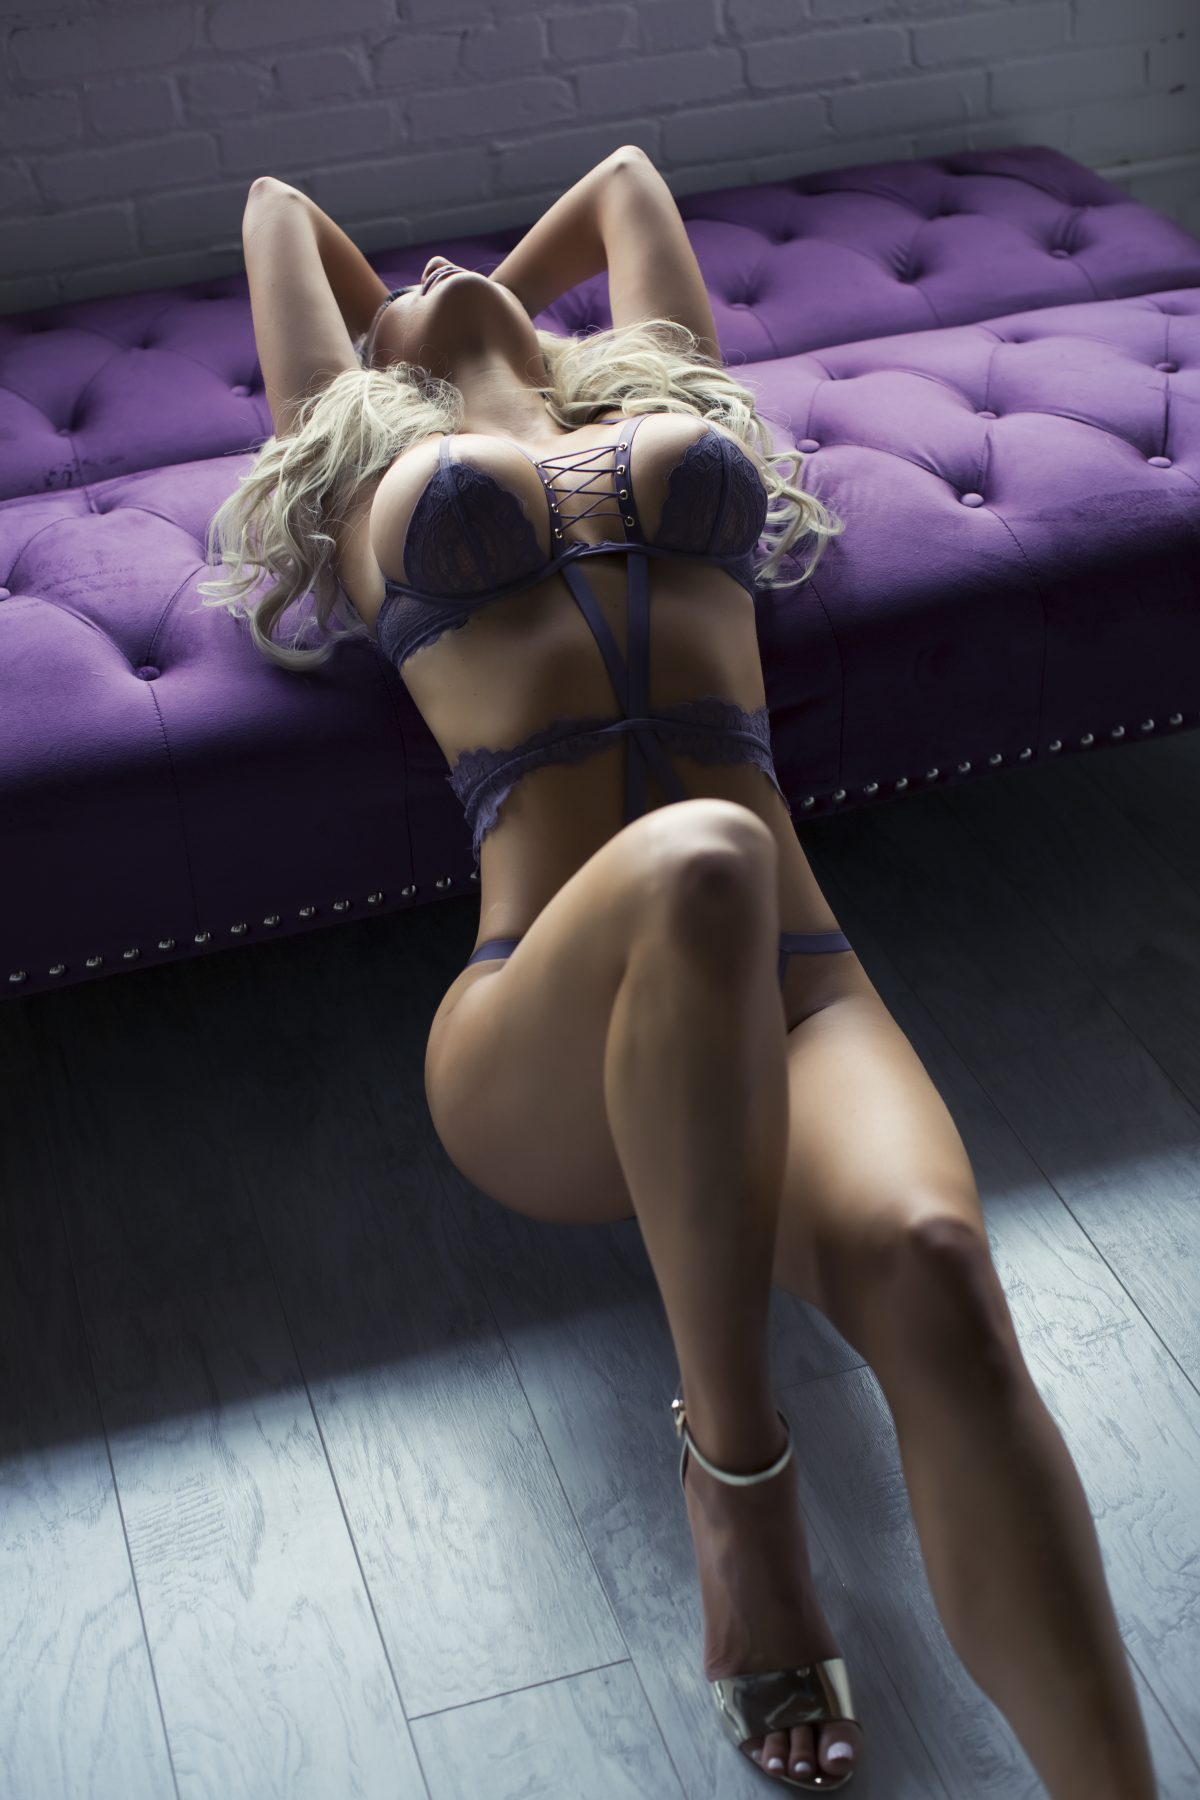 Toronto escorts companion upscale Ava Interests Couple-friendly Non-smoking Age Young Figure Slender Tall Breasts Enhanced Hair Blonde Ethnicity European Tattoos Small